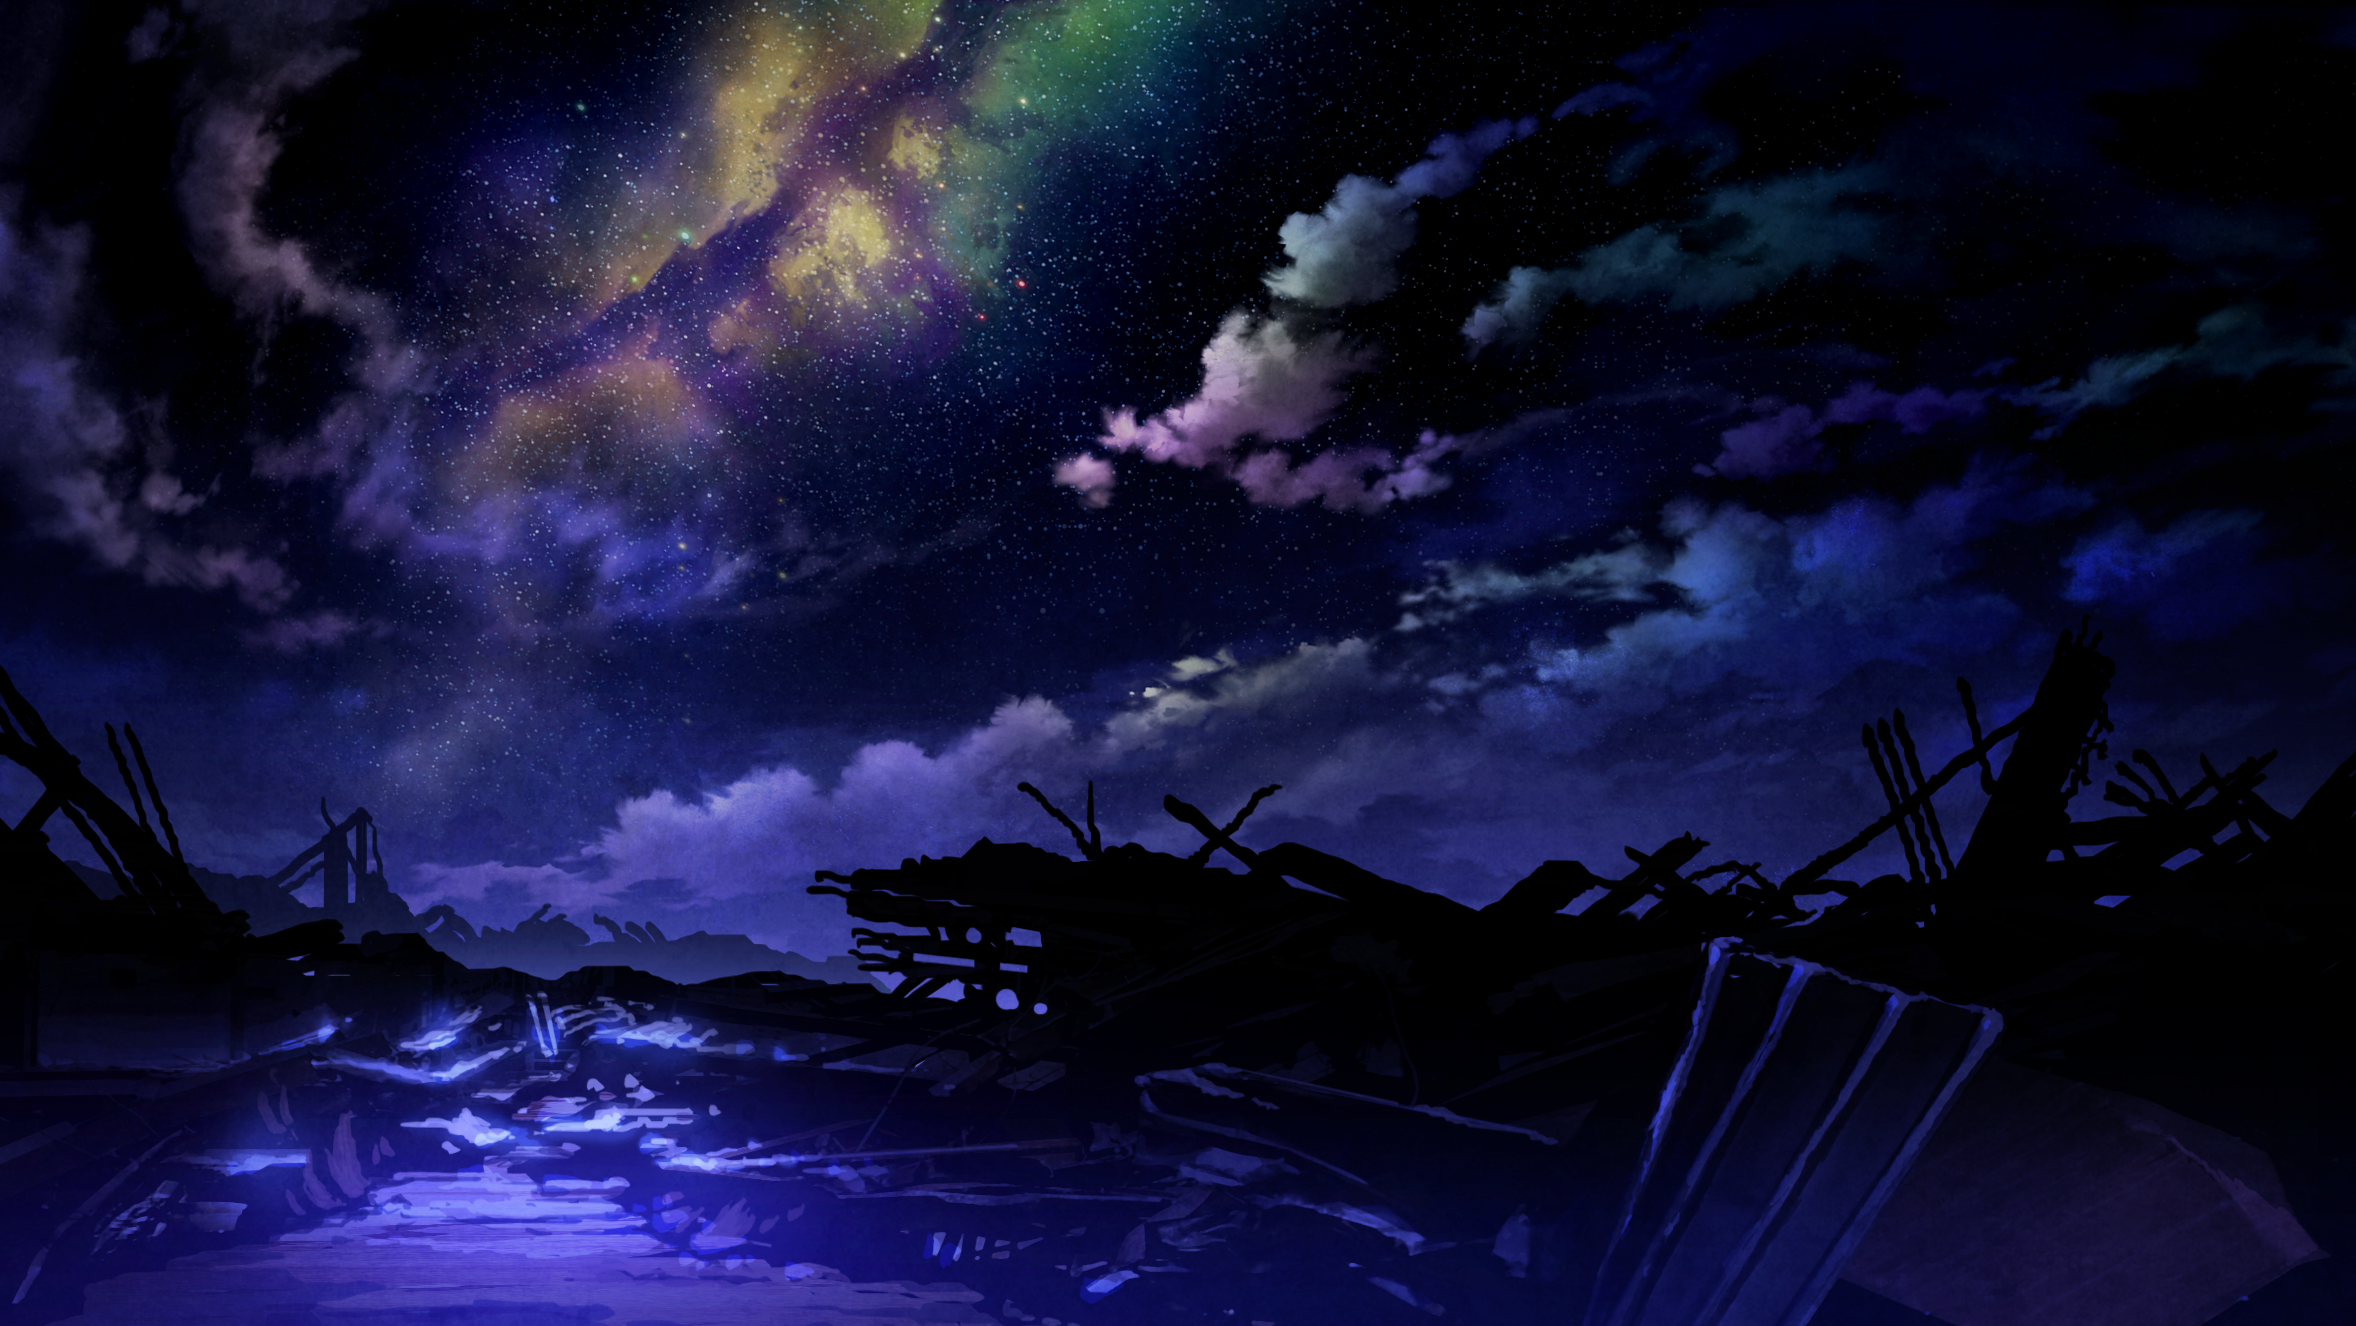 Anime Night Scene Wallpaper Collection 3309ta04 Night